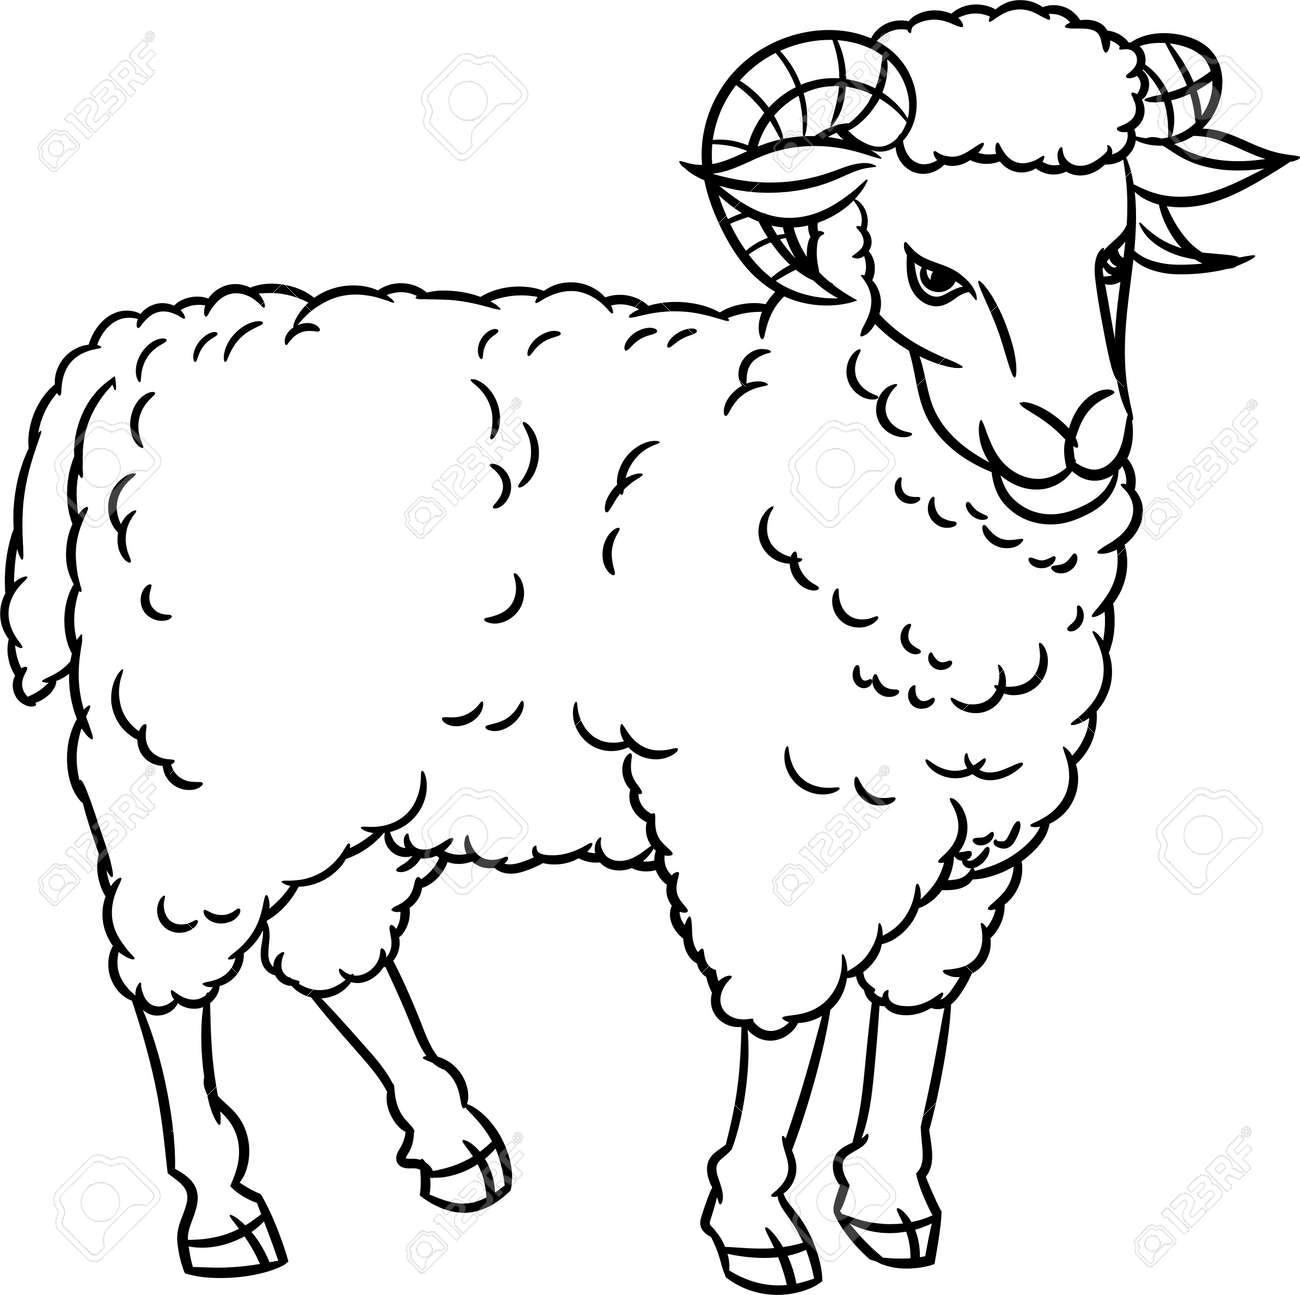 Image of: Cartoon Hand Drawing Sheep Farm Animals Set Sketch Graphic Style Stock Vector 84215769 123rfcom Hand Drawing Sheep Farm Animals Set Sketch Graphic Style Royalty